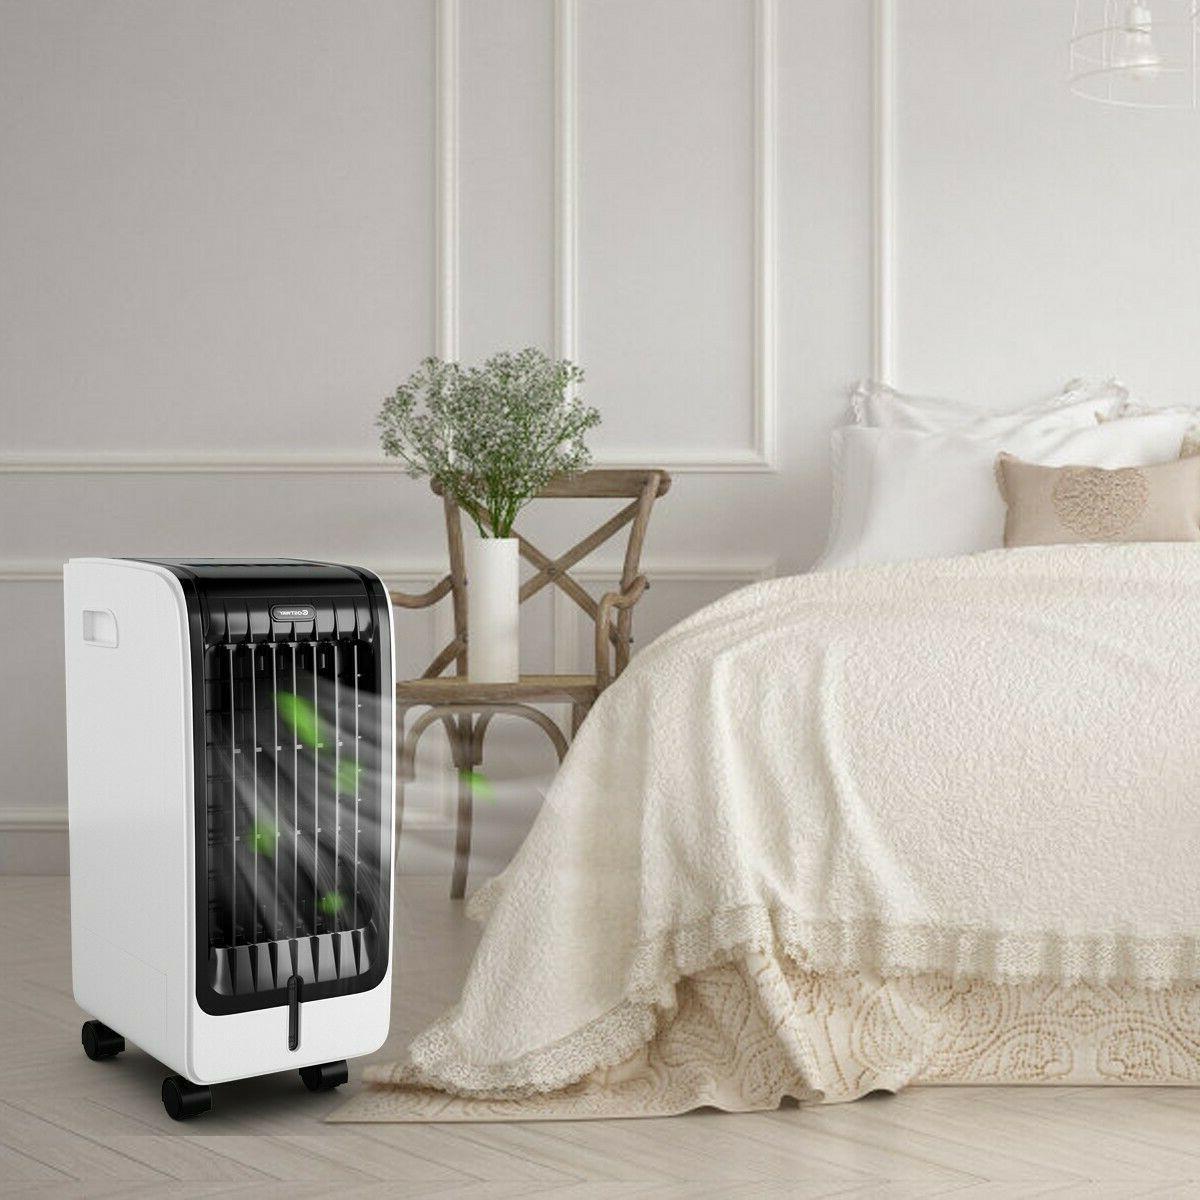 Evaporative Cooler Home with Control